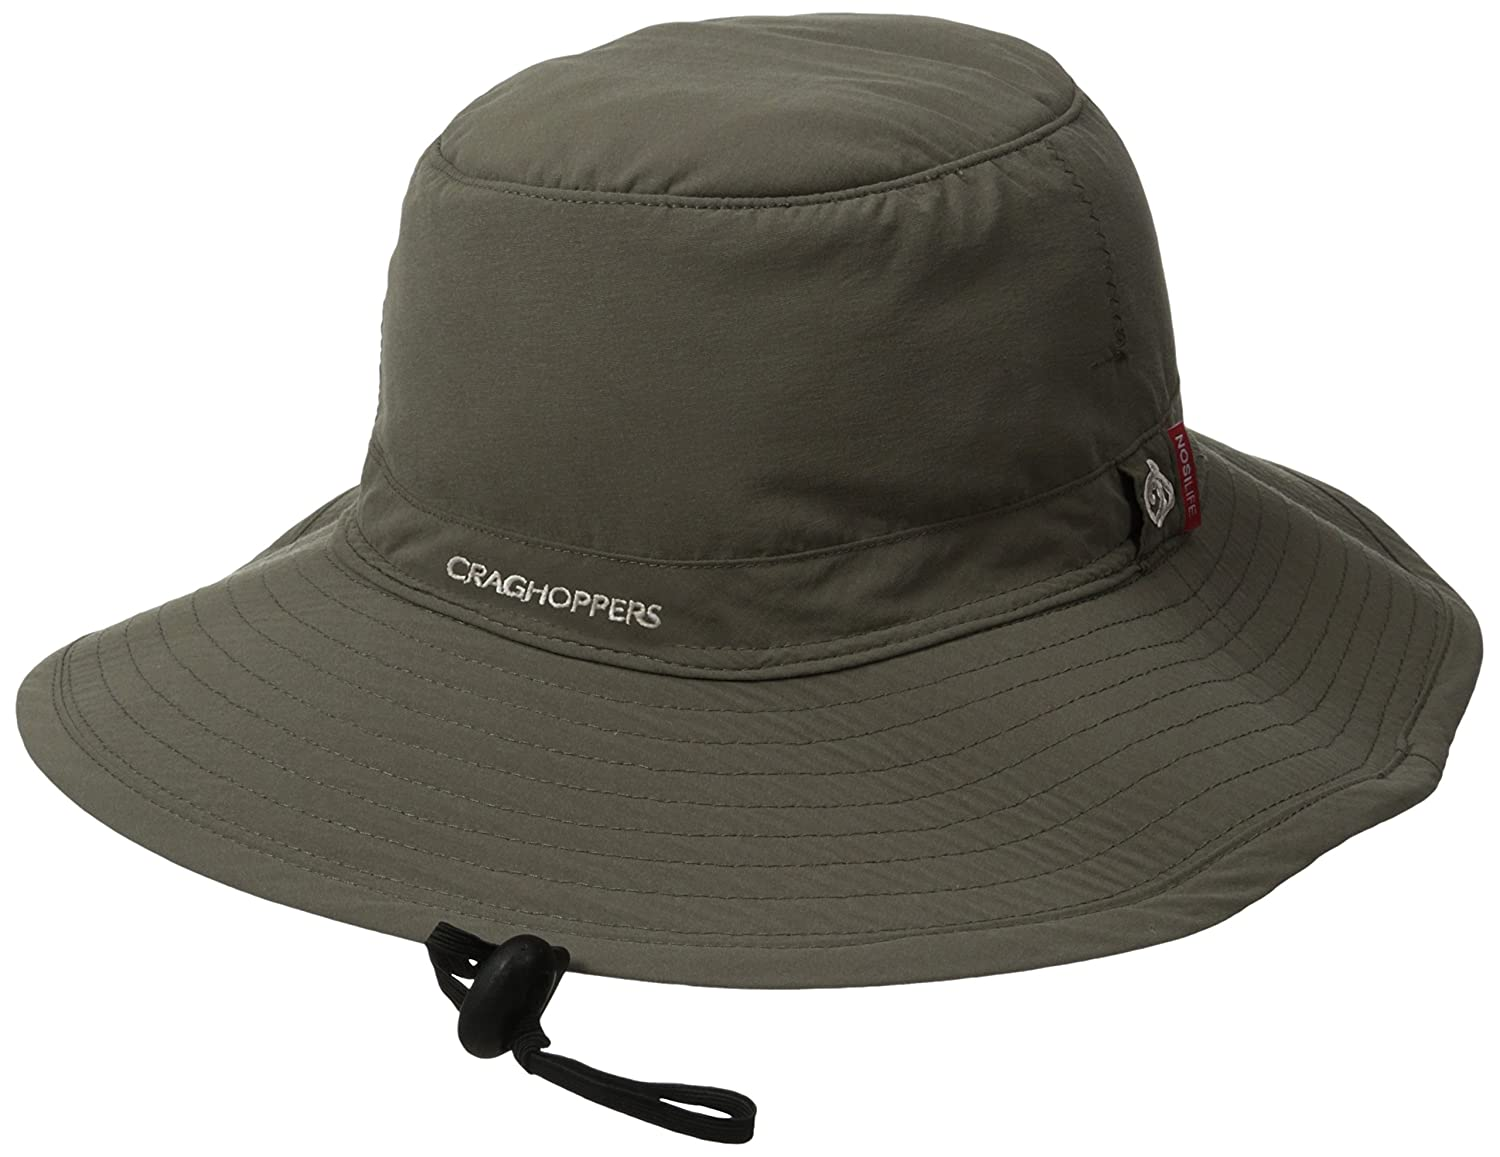 1587a8dafb8f9 Amazon.com   Craghoppers Men s NosiLife Outback Hat   Sports   Outdoors